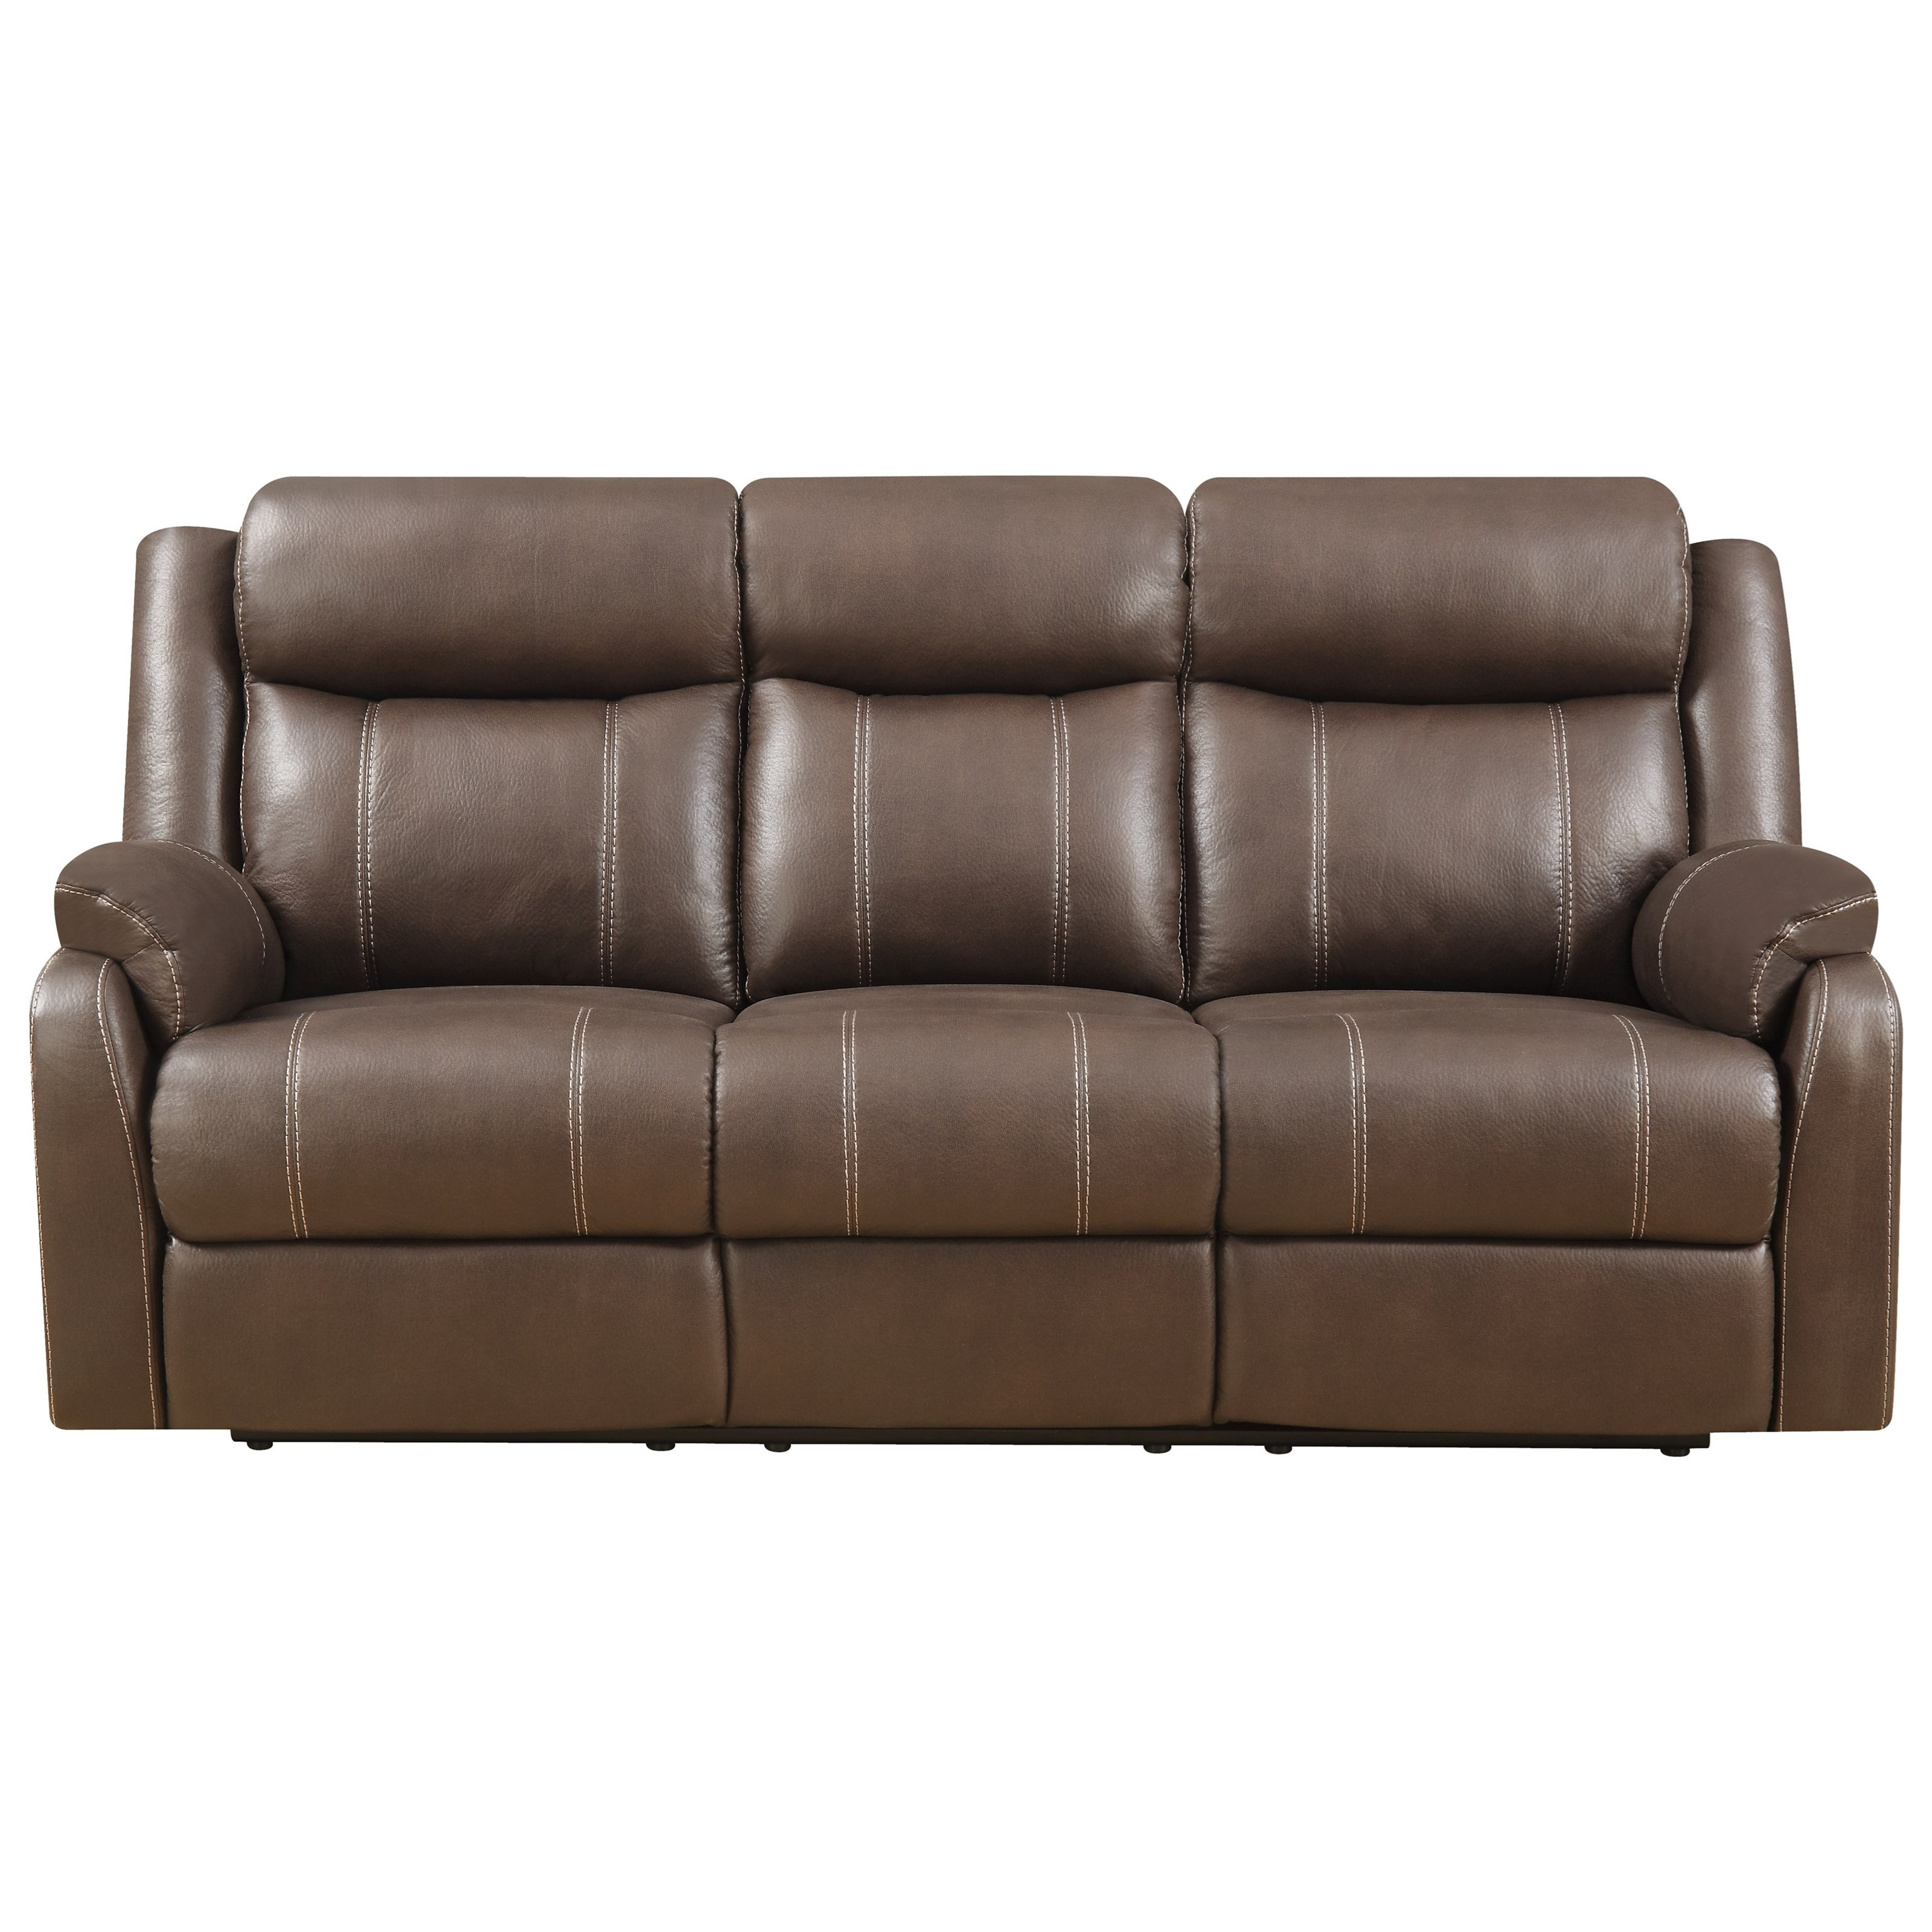 Domino-US Reclining Sofa W/table by Klaussner International at Pilgrim Furniture City